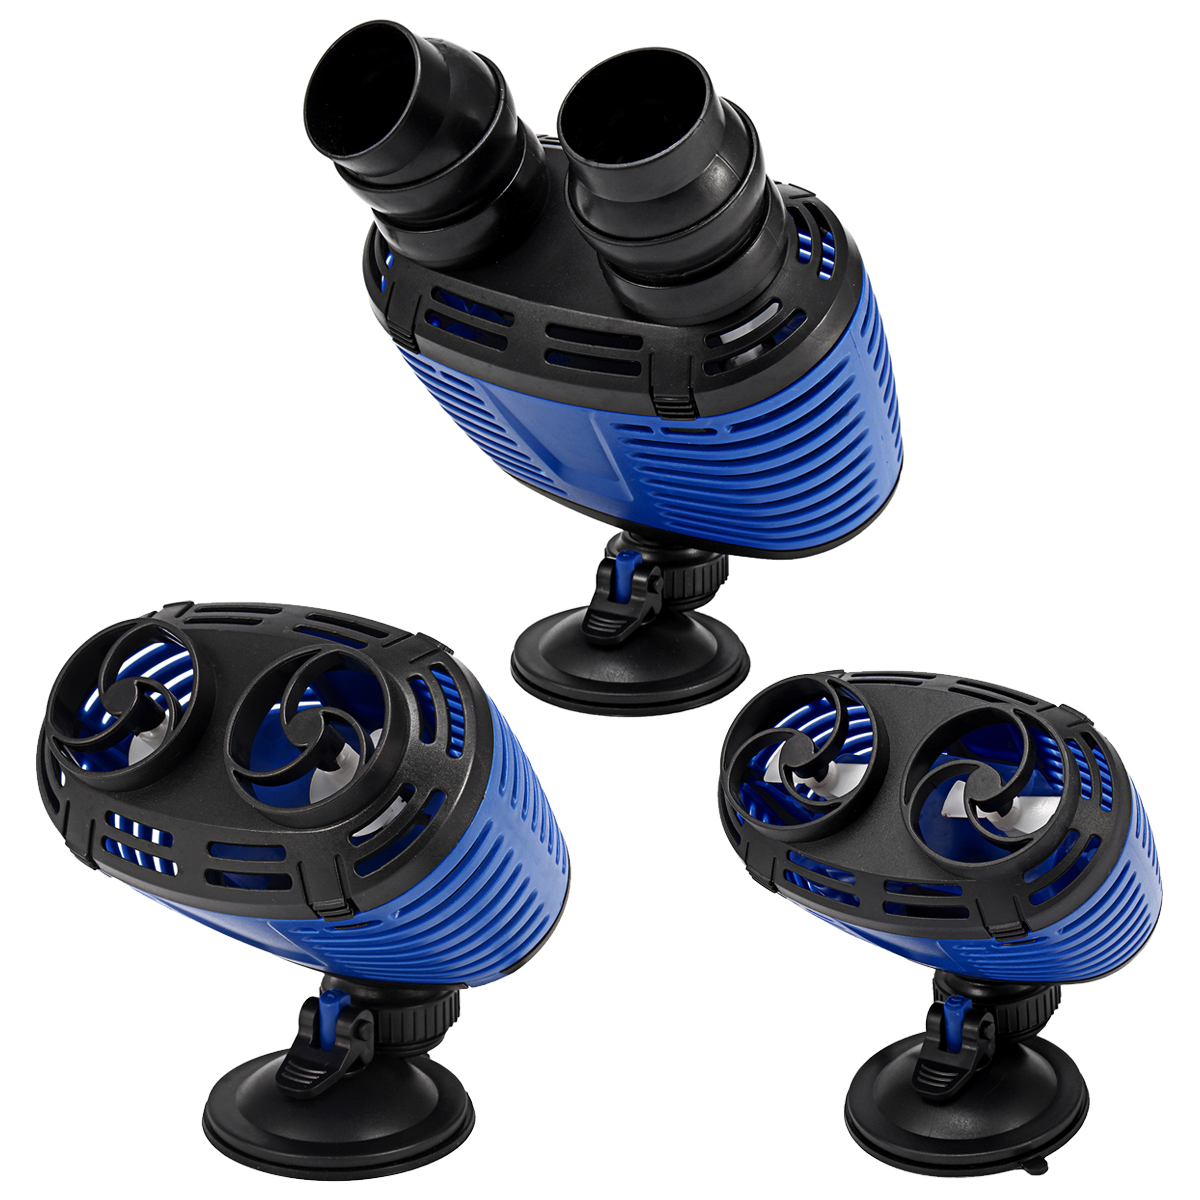 6/12/24W Submersible Water Pumps Powerhead Wave Maker Fish Tank Aquarium Suction Cup Base Water Pump Cleaner Tools Accessories6/12/24W Submersible Water Pumps Powerhead Wave Maker Fish Tank Aquarium Suction Cup Base Water Pump Cleaner Tools Accessories